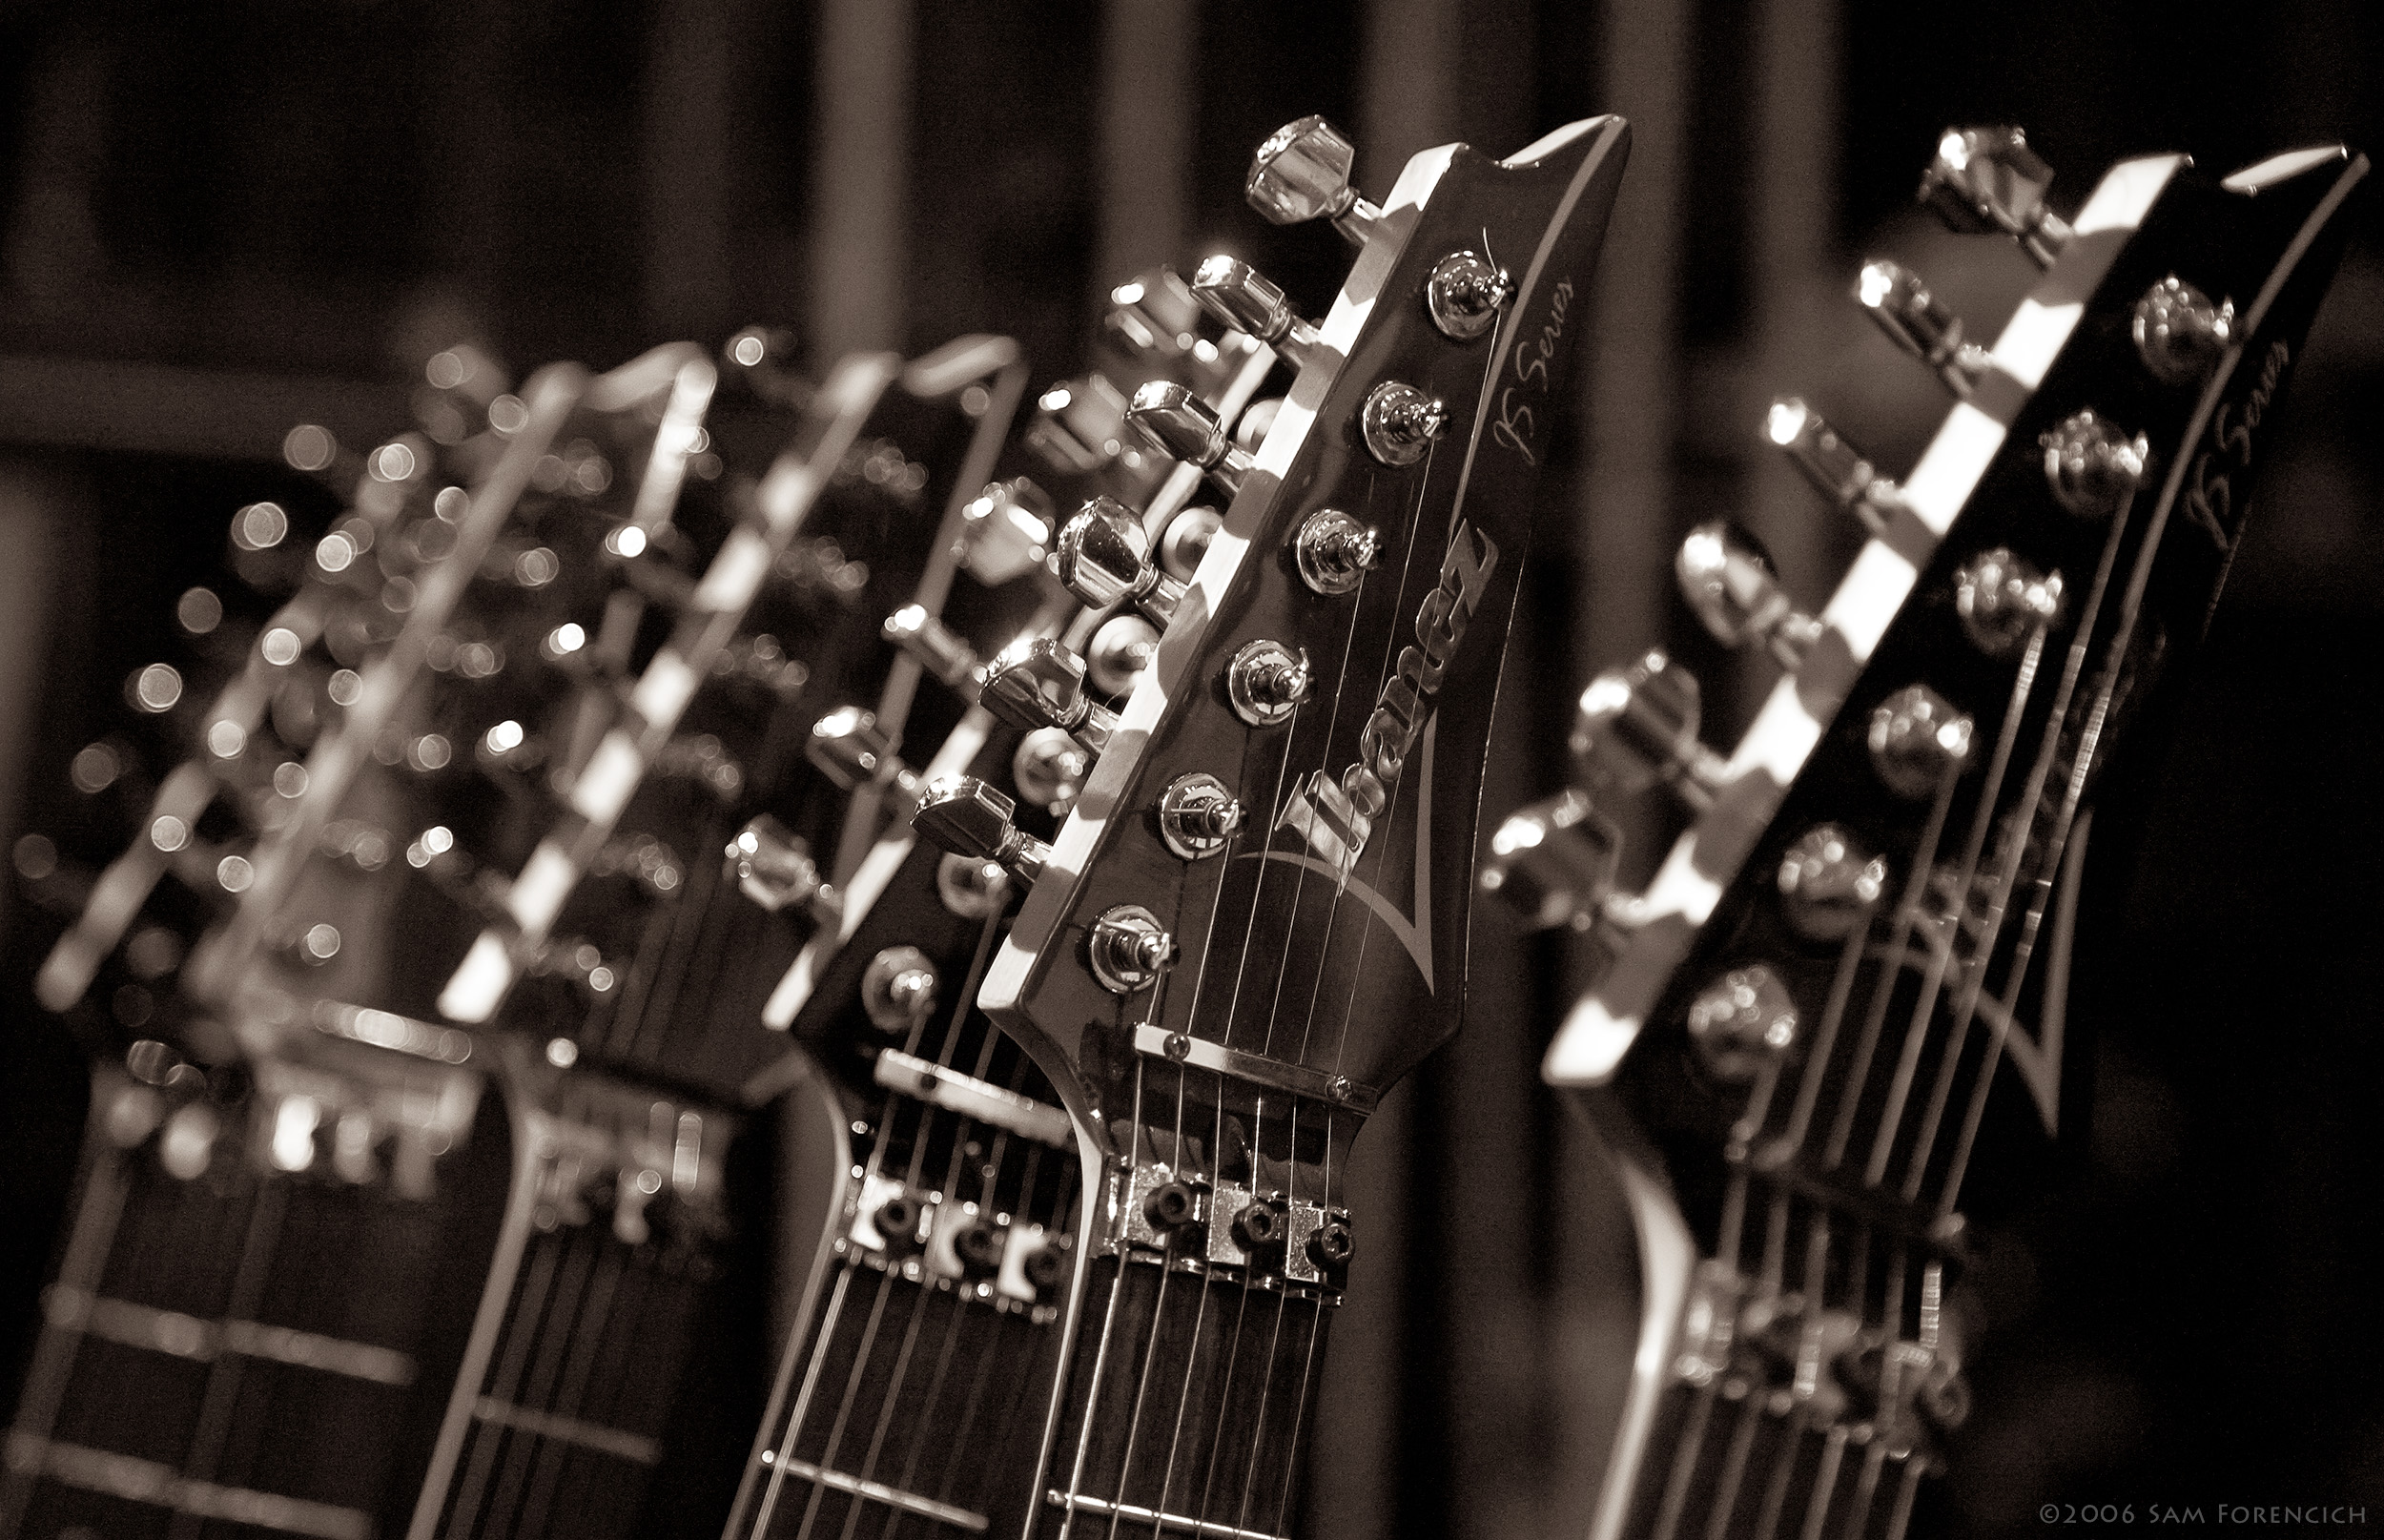 May 2006,San Francisco, California - Joe Satriani's guitars await the performance at the Warfield Theater - 2006 Super Colossal Tour ©2006 Sam Forencich